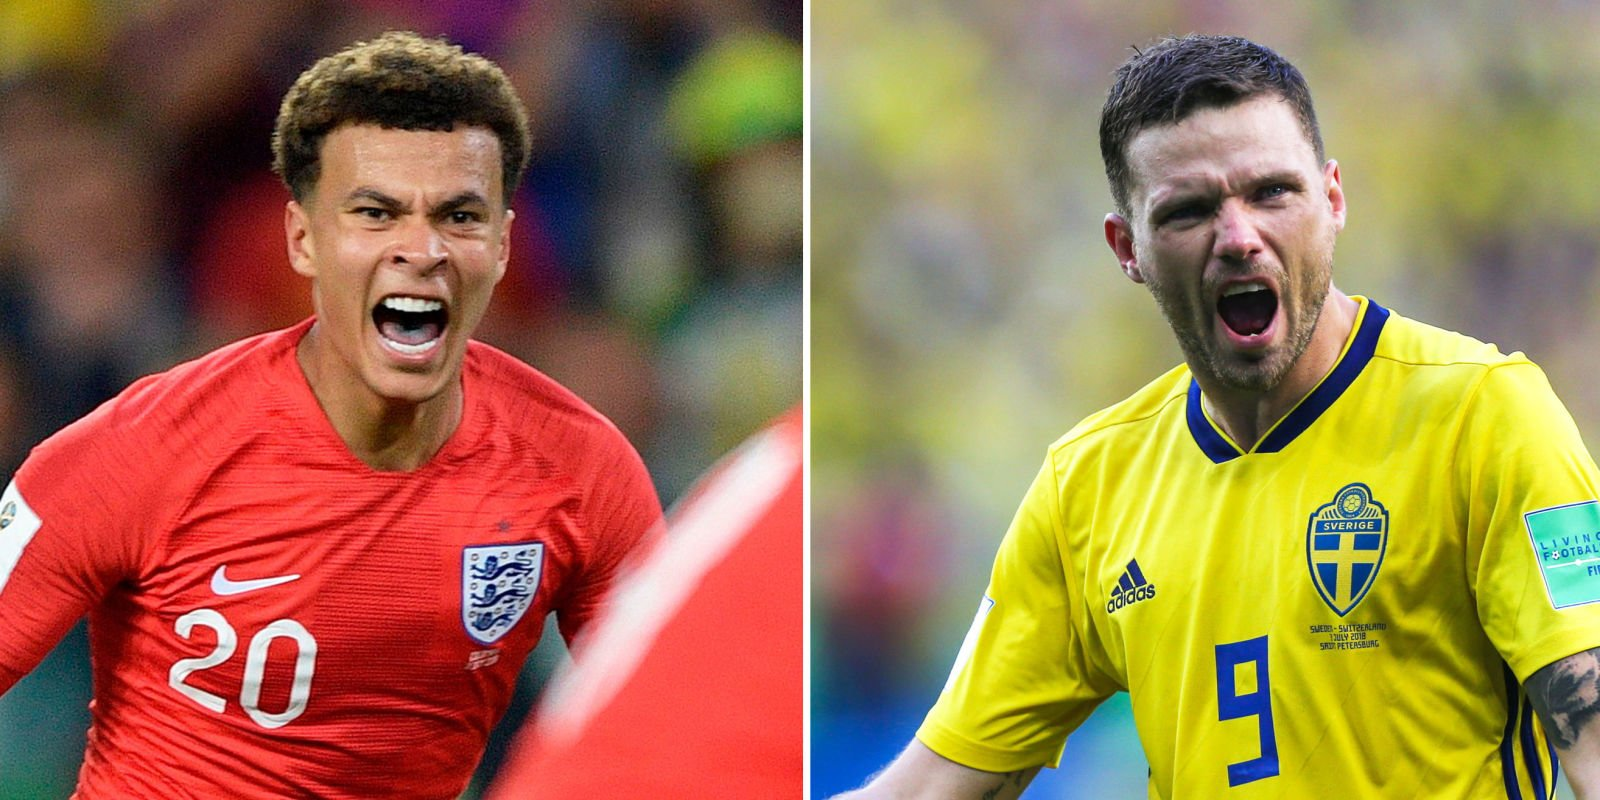 World Cup 2018: How to watch England vs Sweden online